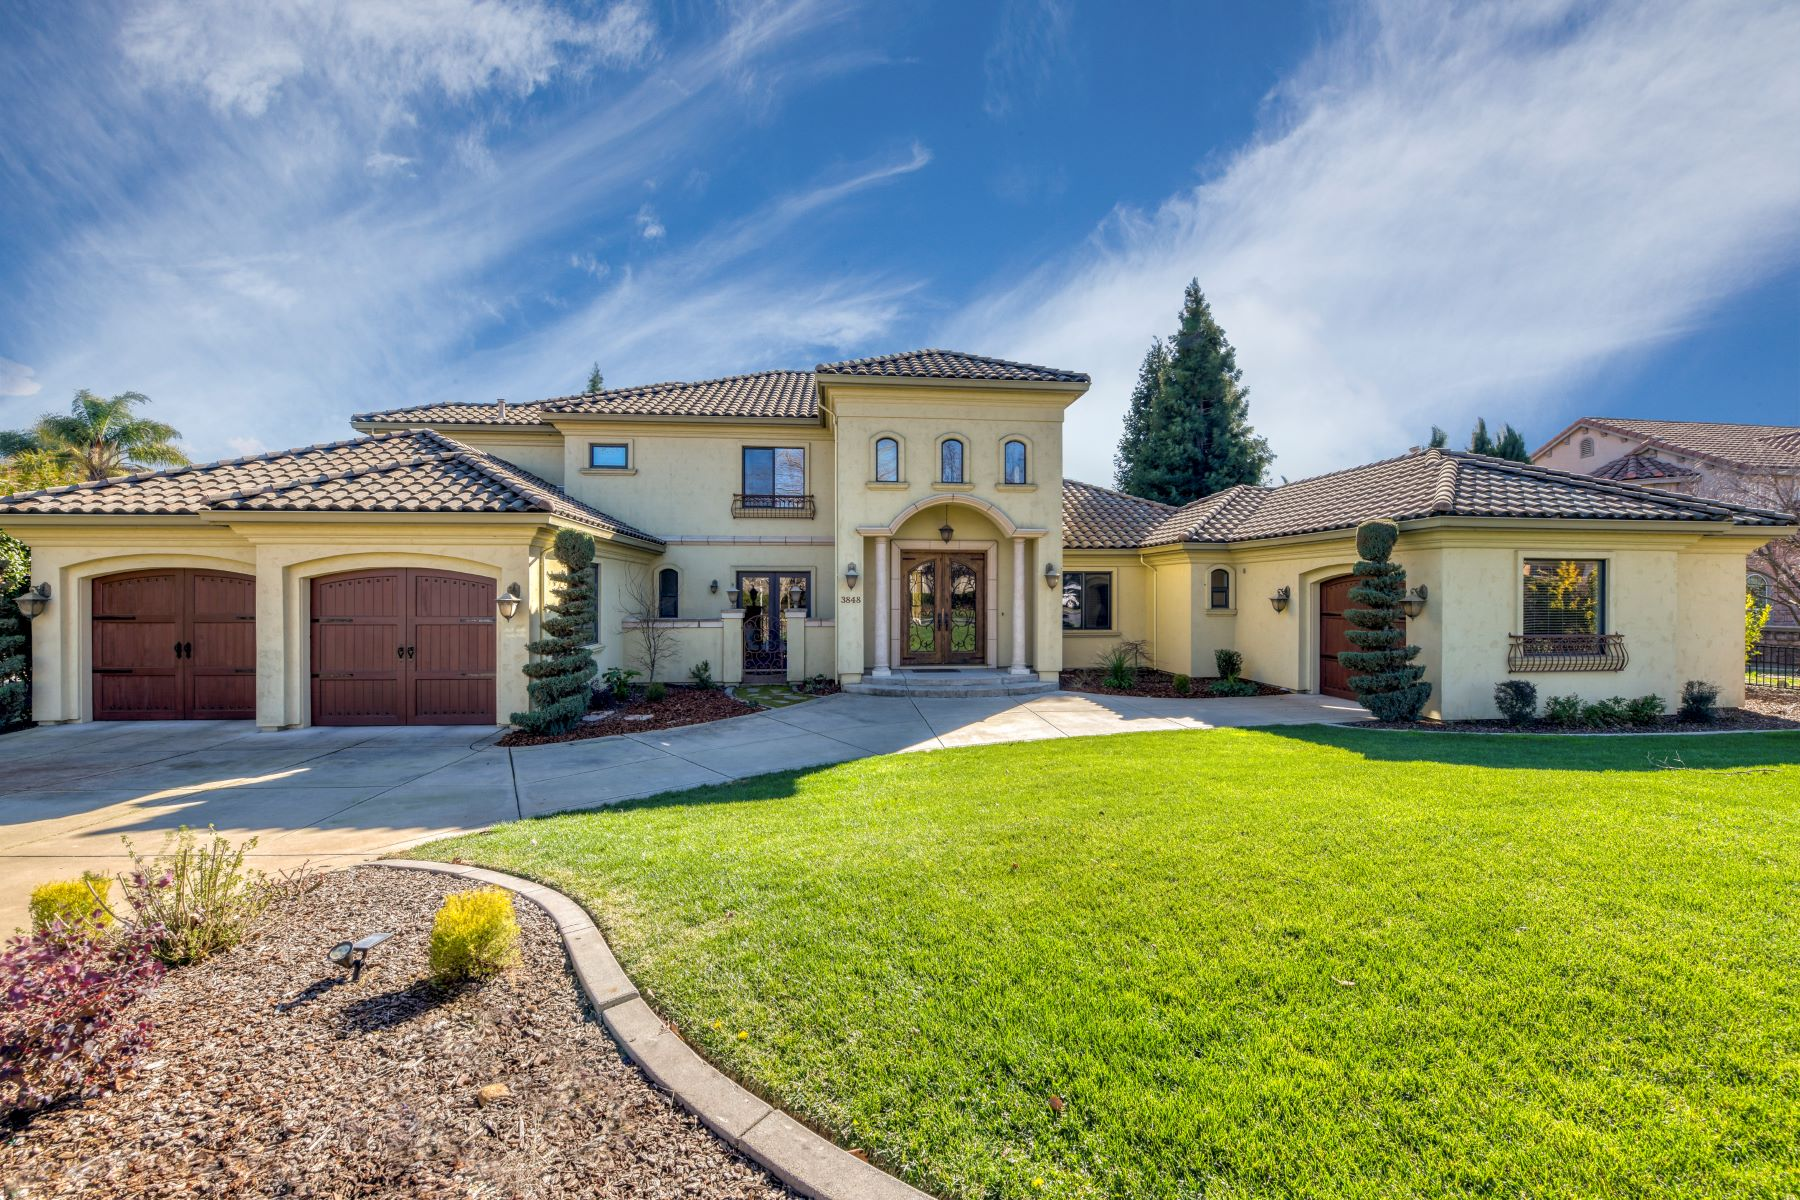 Single Family Home for Active at 3848 Saint Julien Way, Roseville, CA 95747 3848 Saint Julien Way Roseville, California 95747 United States